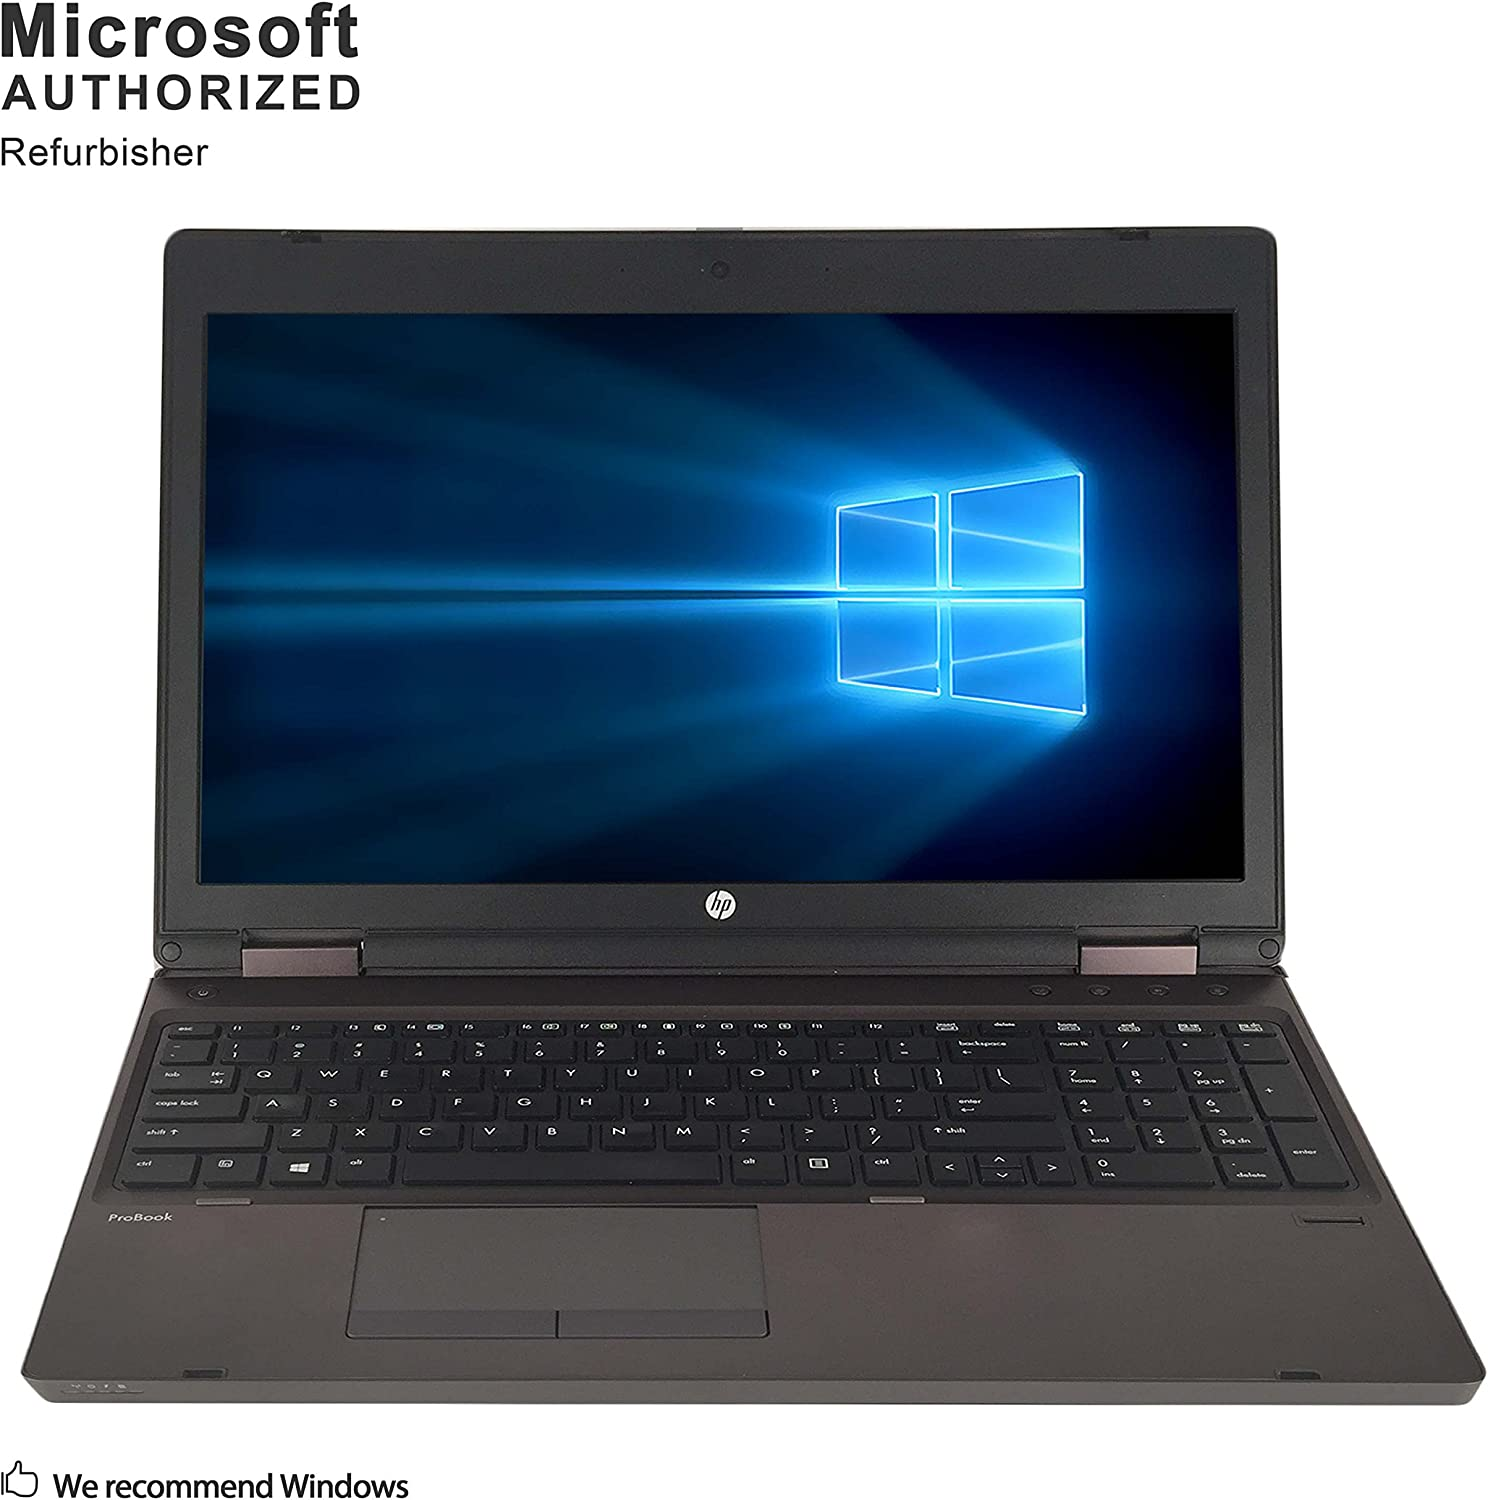 HP ProBook 6570B 15.6 Inch Business PC, Intel Core i5-3210M up to 3.1GHz, 8G DDR3, 320G, WiFi, VGA, DP, Windows 10 64 Bit Multi-Language Supports English/French/Spanish(Renewed)